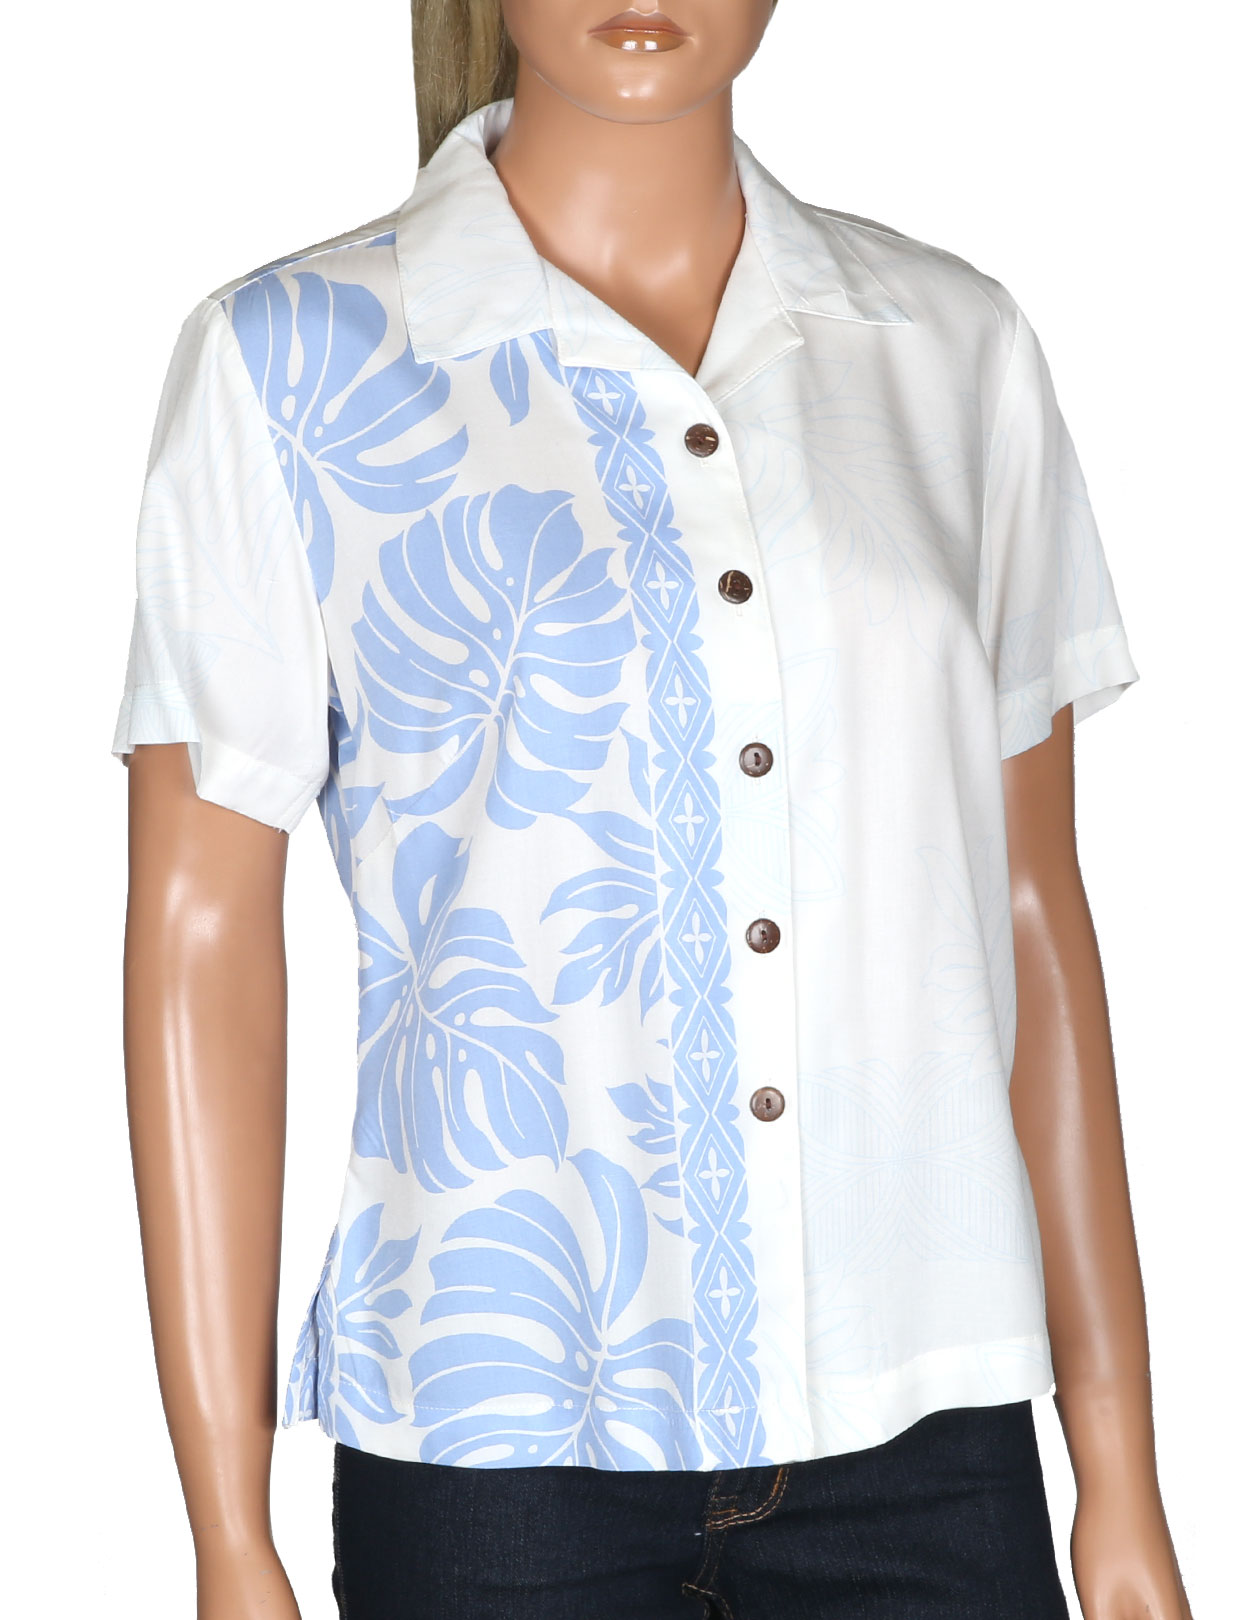 Plus Size Women Clothes Shaka Time Hawaii Clothing Store